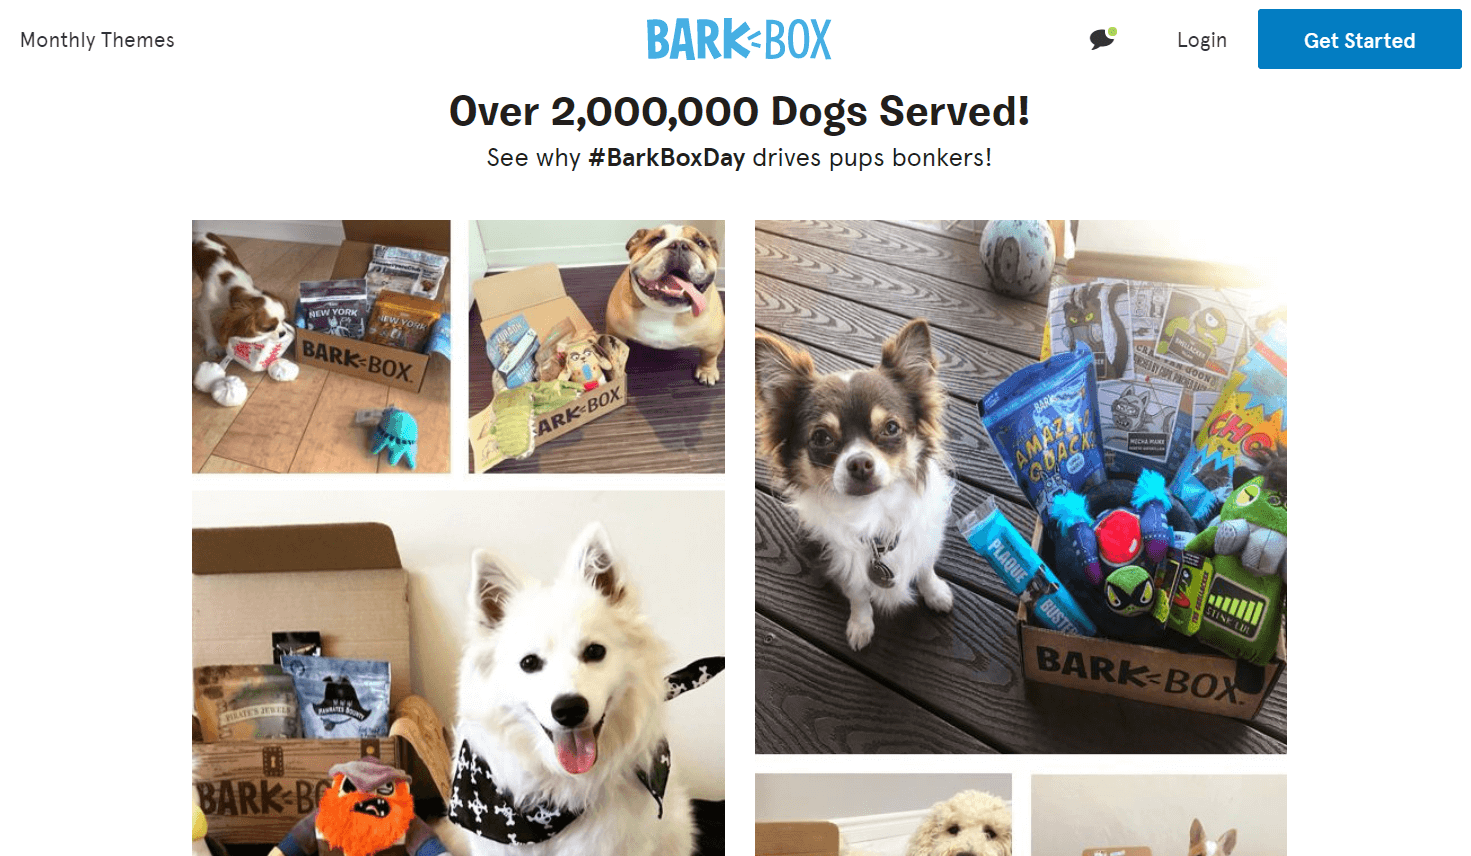 BarkBox Ecommerce Content Marketing Examples